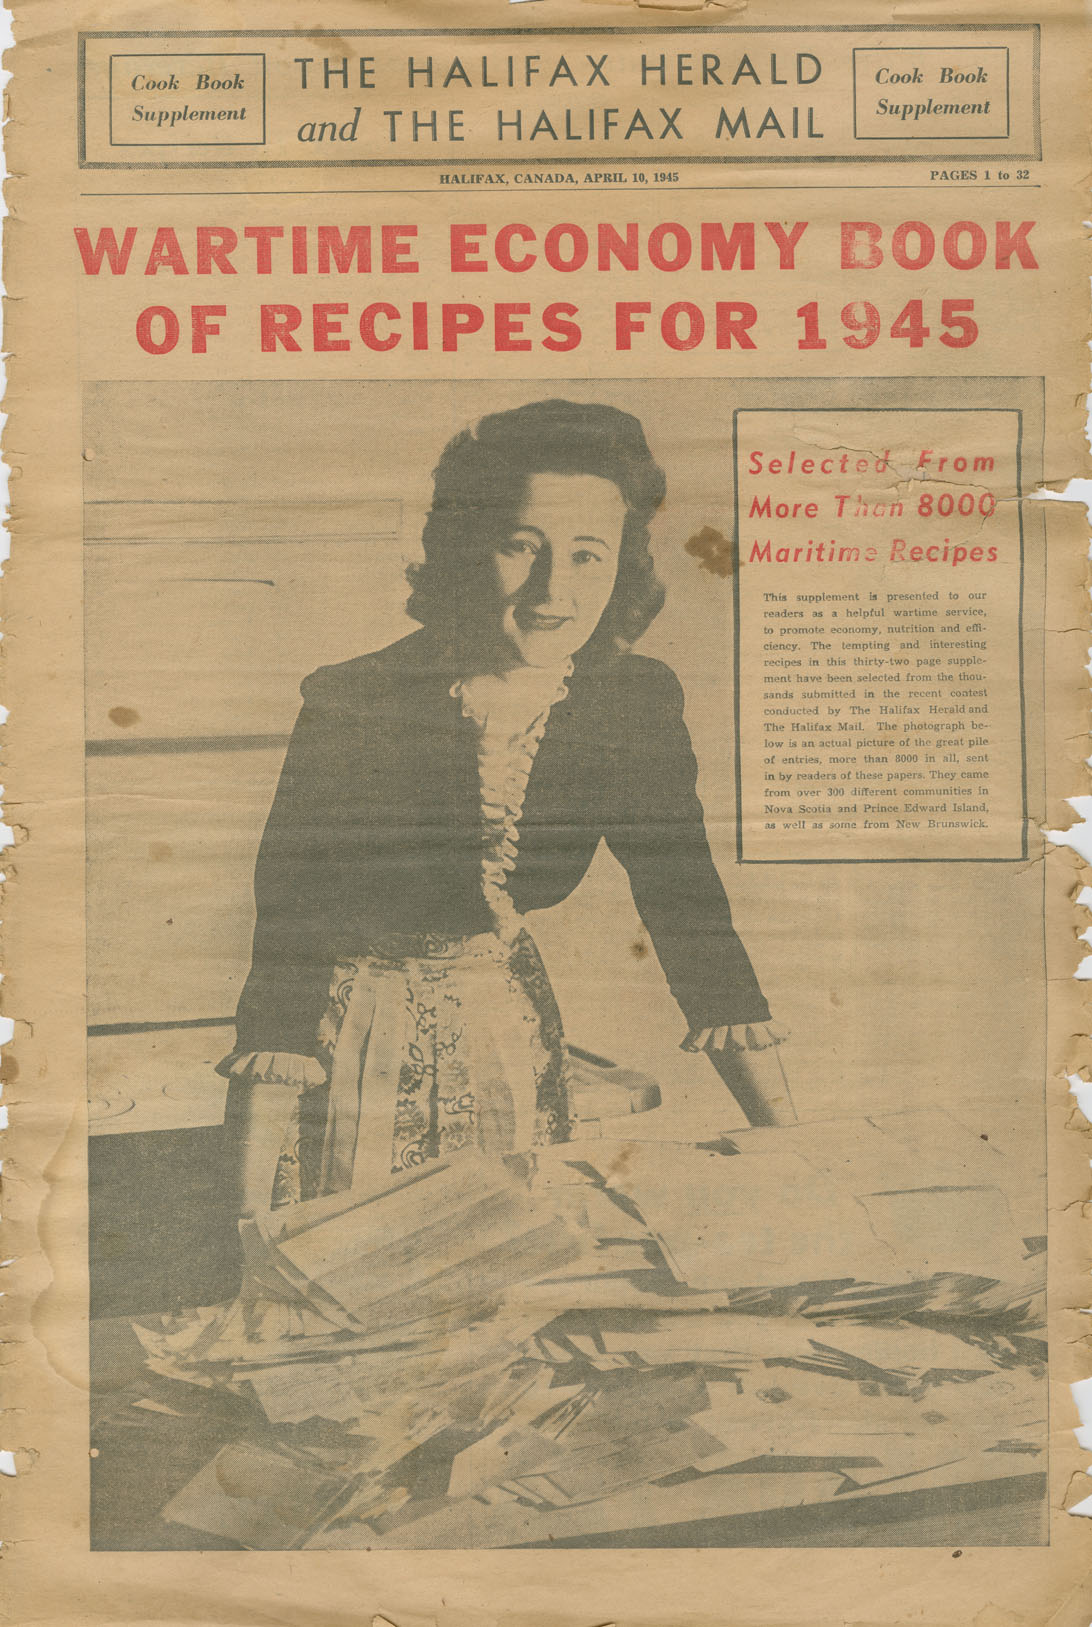 Wartime Economy Book of Recipes for 1945